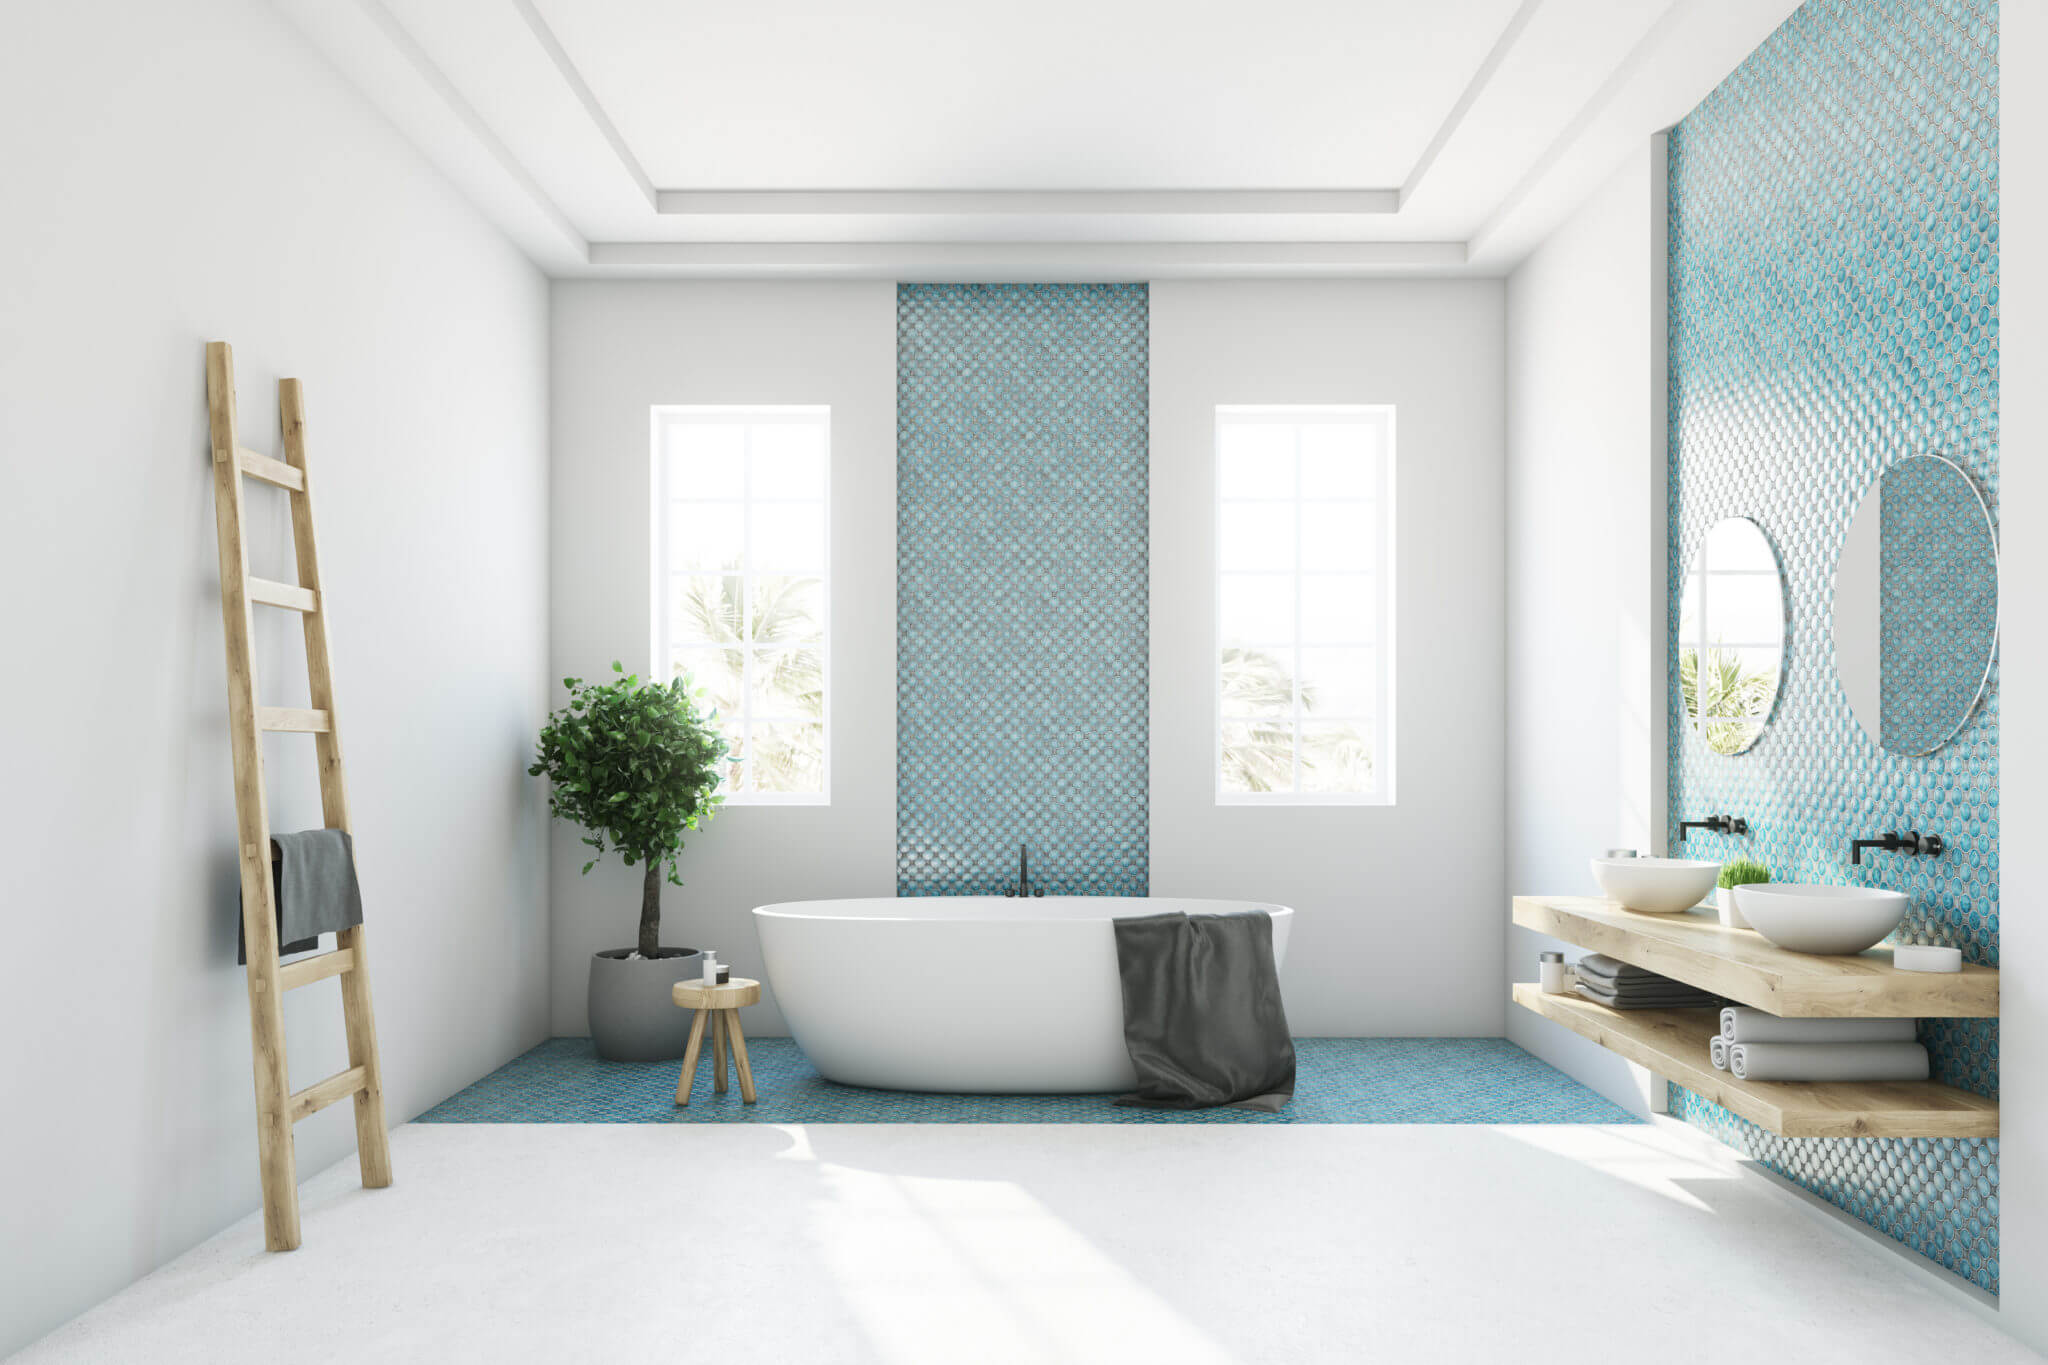 Bathroom with blue penny round tile walls and flooring